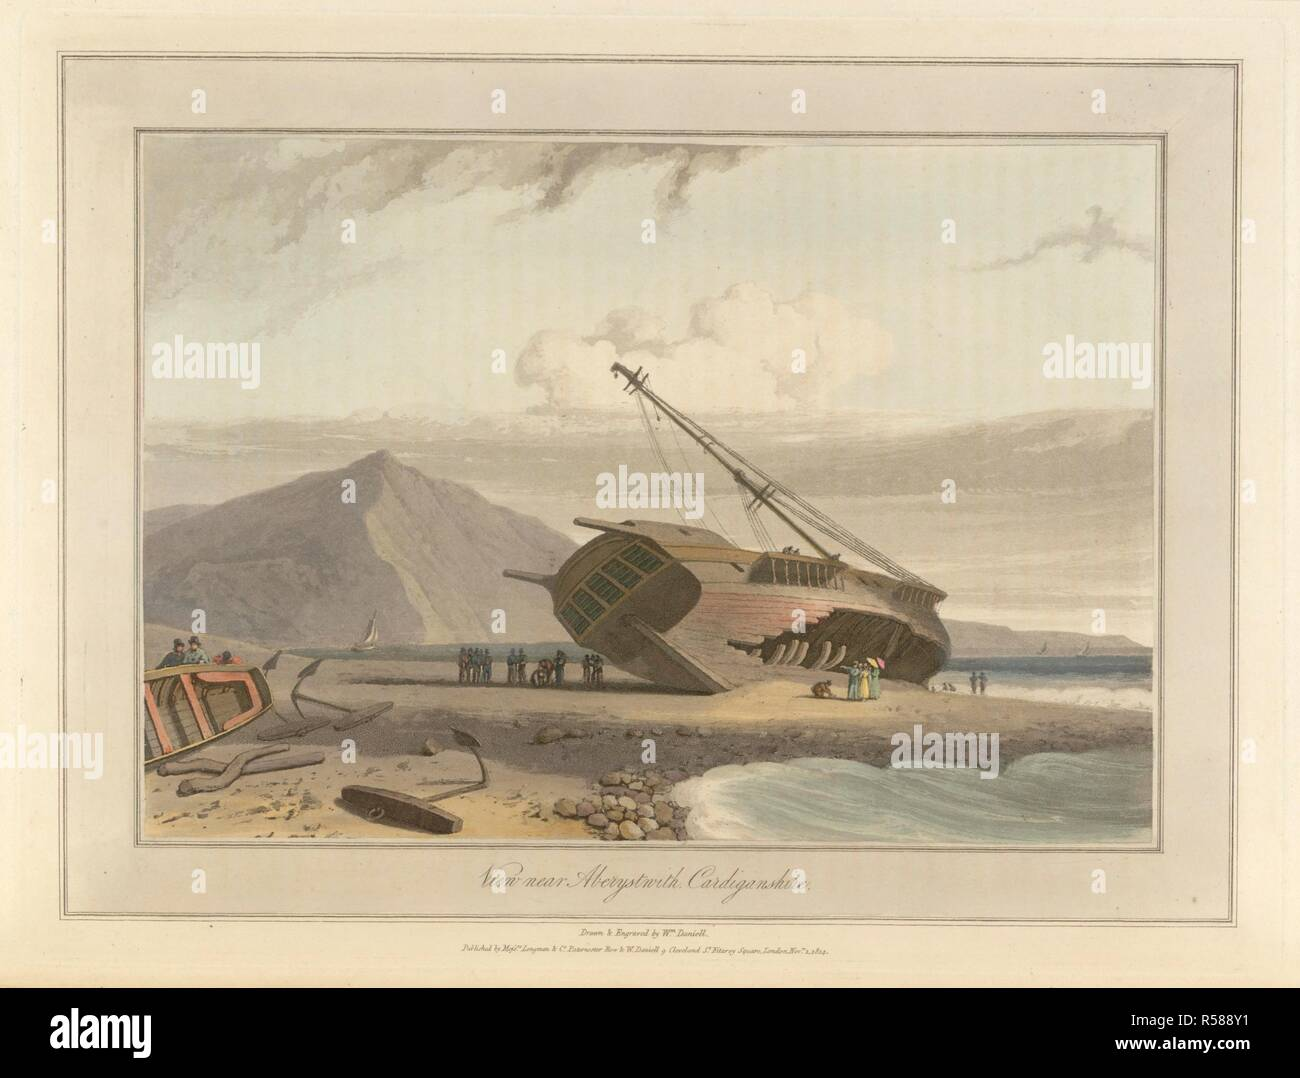 A shipwreck beached on shore near Aberystwyth in Cardiganshire. The coastline and landscape of Great Britain. Drawn and engraved by William Daniell. A Voyage Round Great Britain undertaken in the summer of the year 1813. London England. Source: G.7043 plate 20. Language: English. Author: DANIELL, WILLIAM. AYTON, RICHARD. - Stock Image